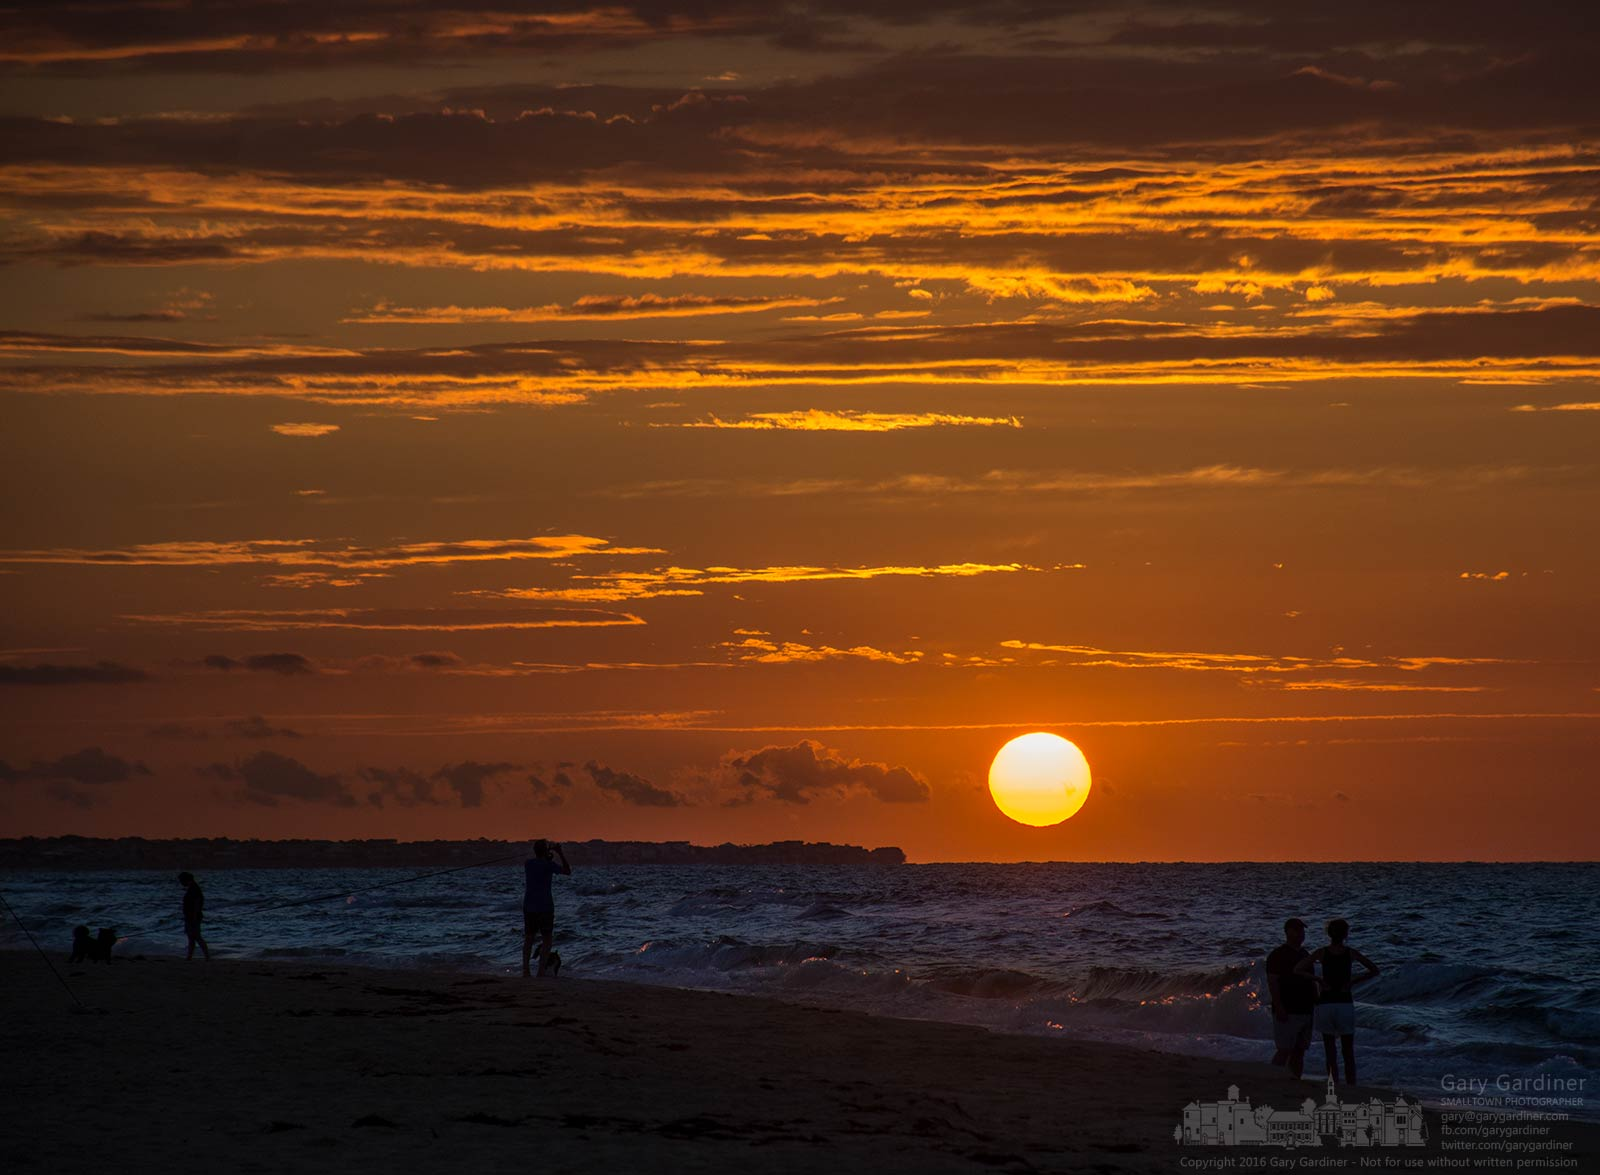 A fisherman, a couple, and a man with his dog watch the sunrise across the point of St. George Island on the Gulf coast of Florida. My Final Photo for July 22, 2016.